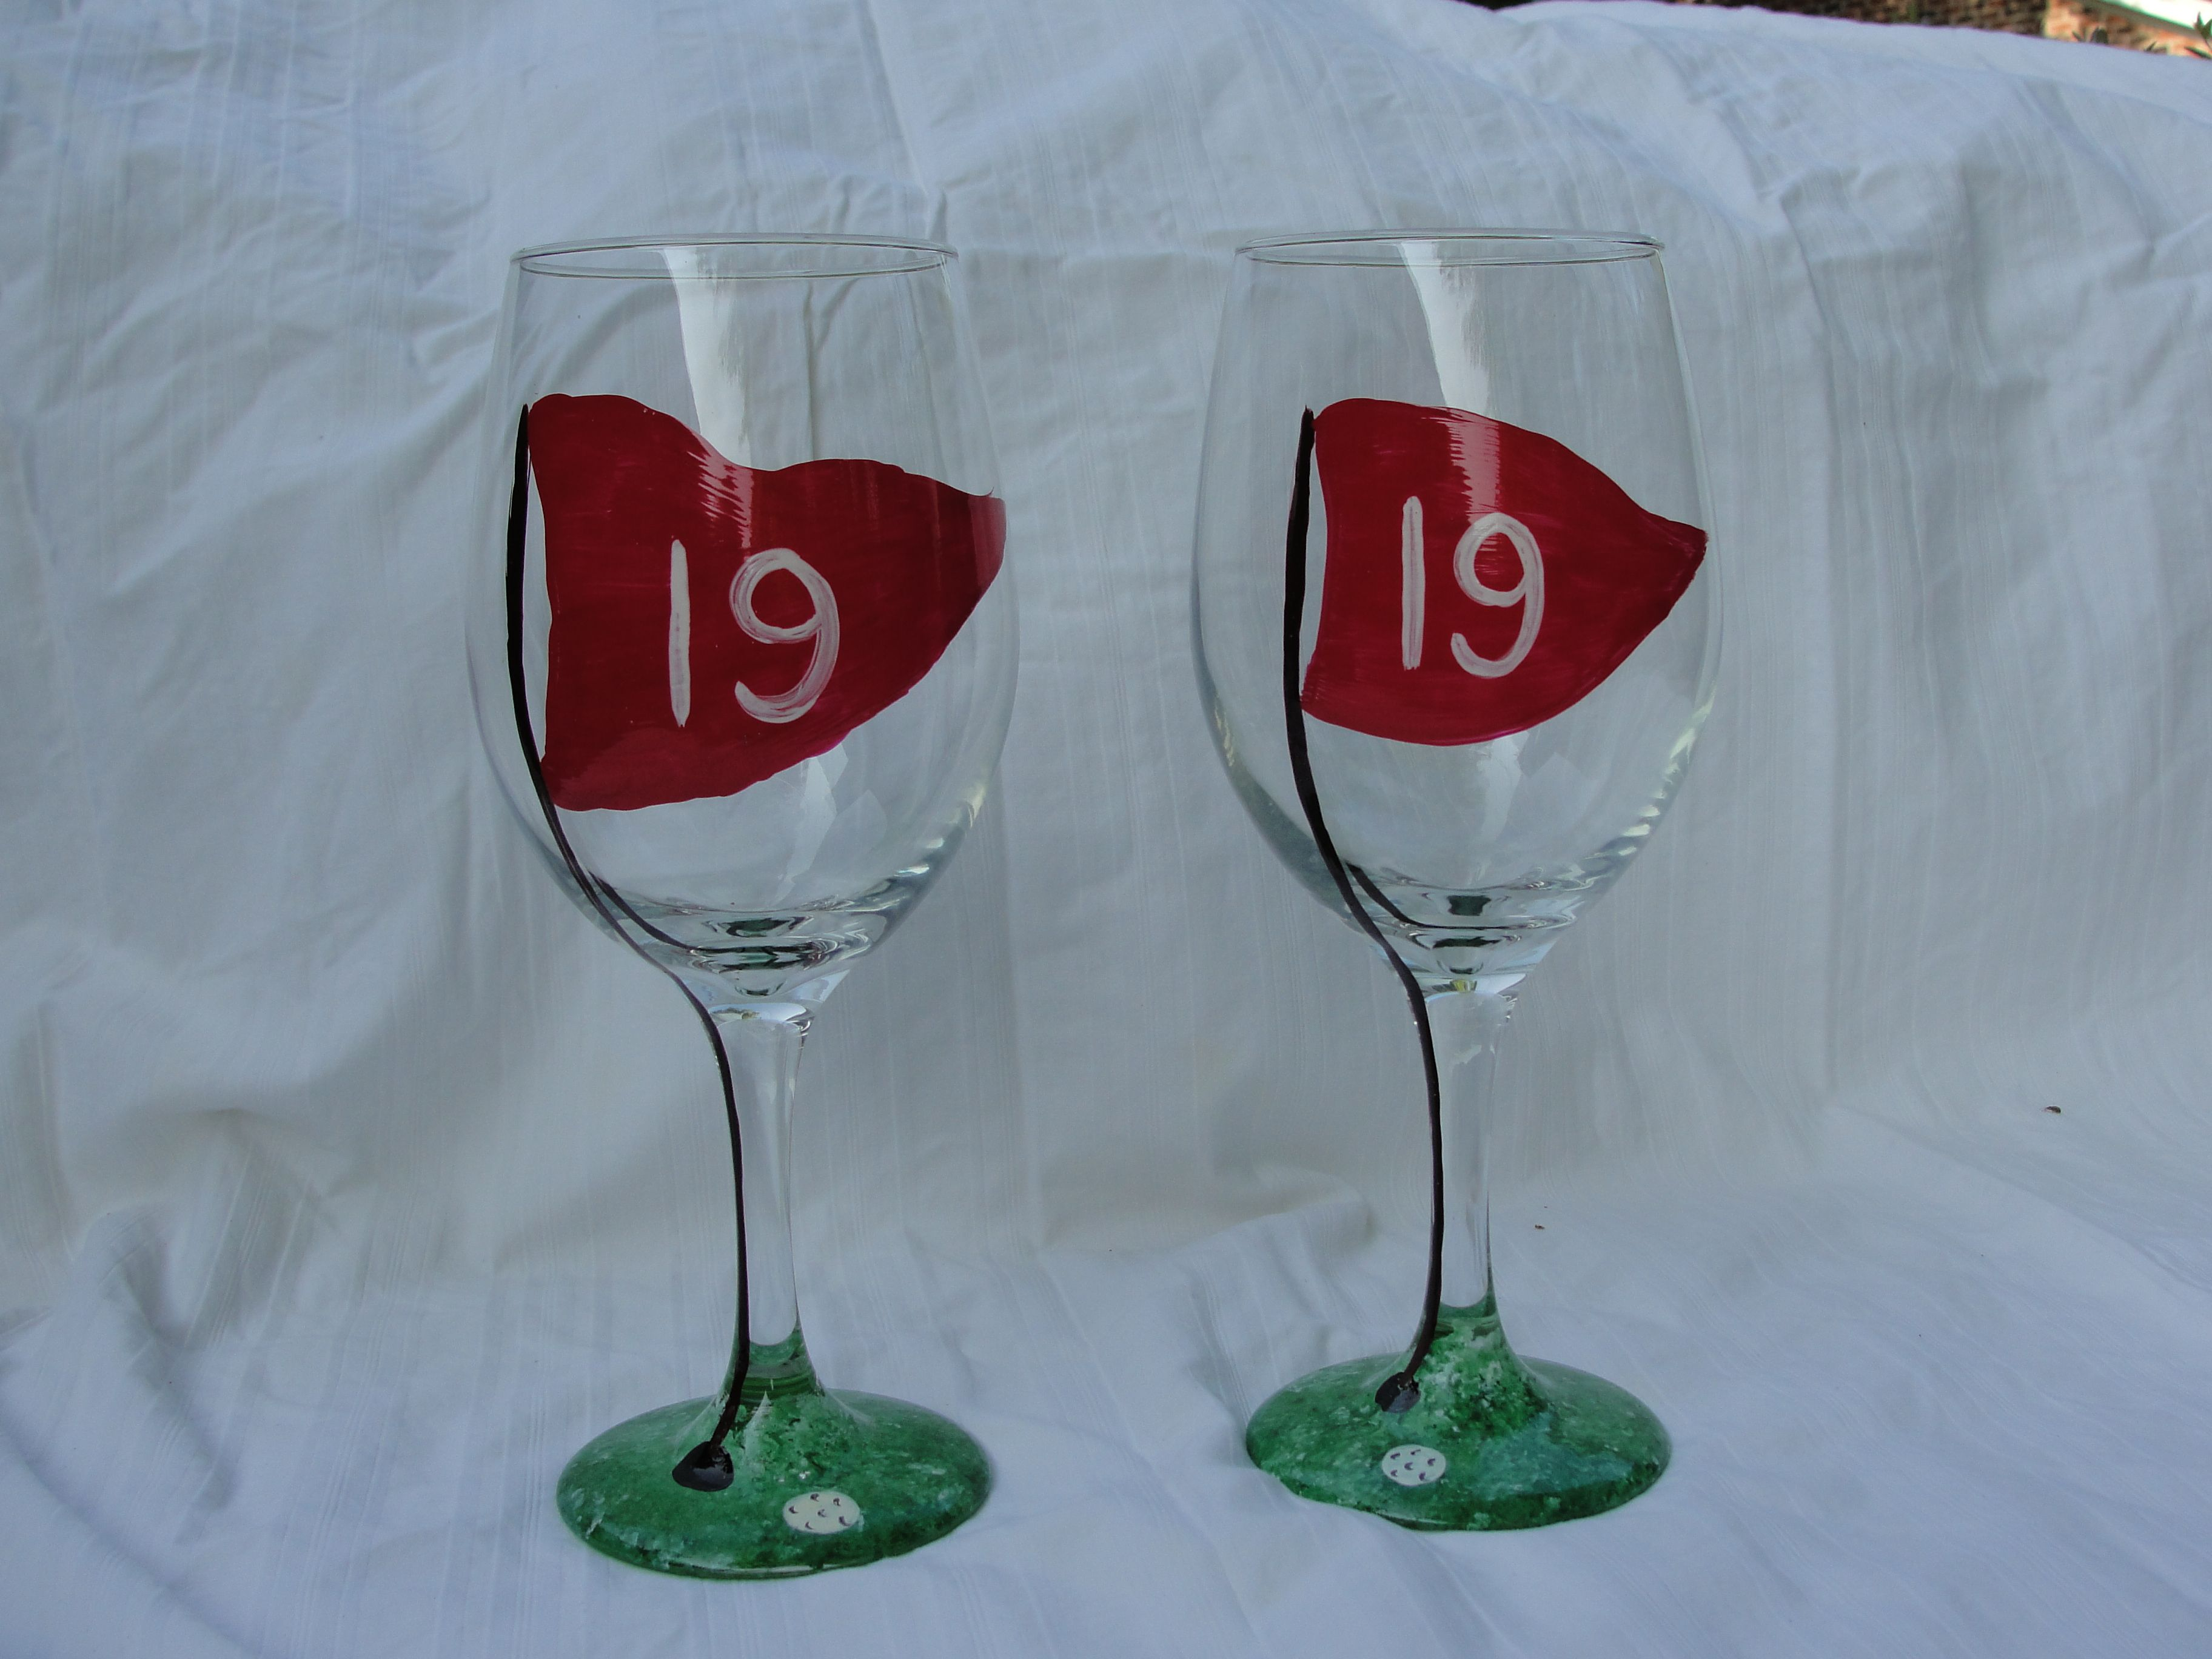 Fancy Wine Glass Hand Painted Glasses Decorative Personalized Wine